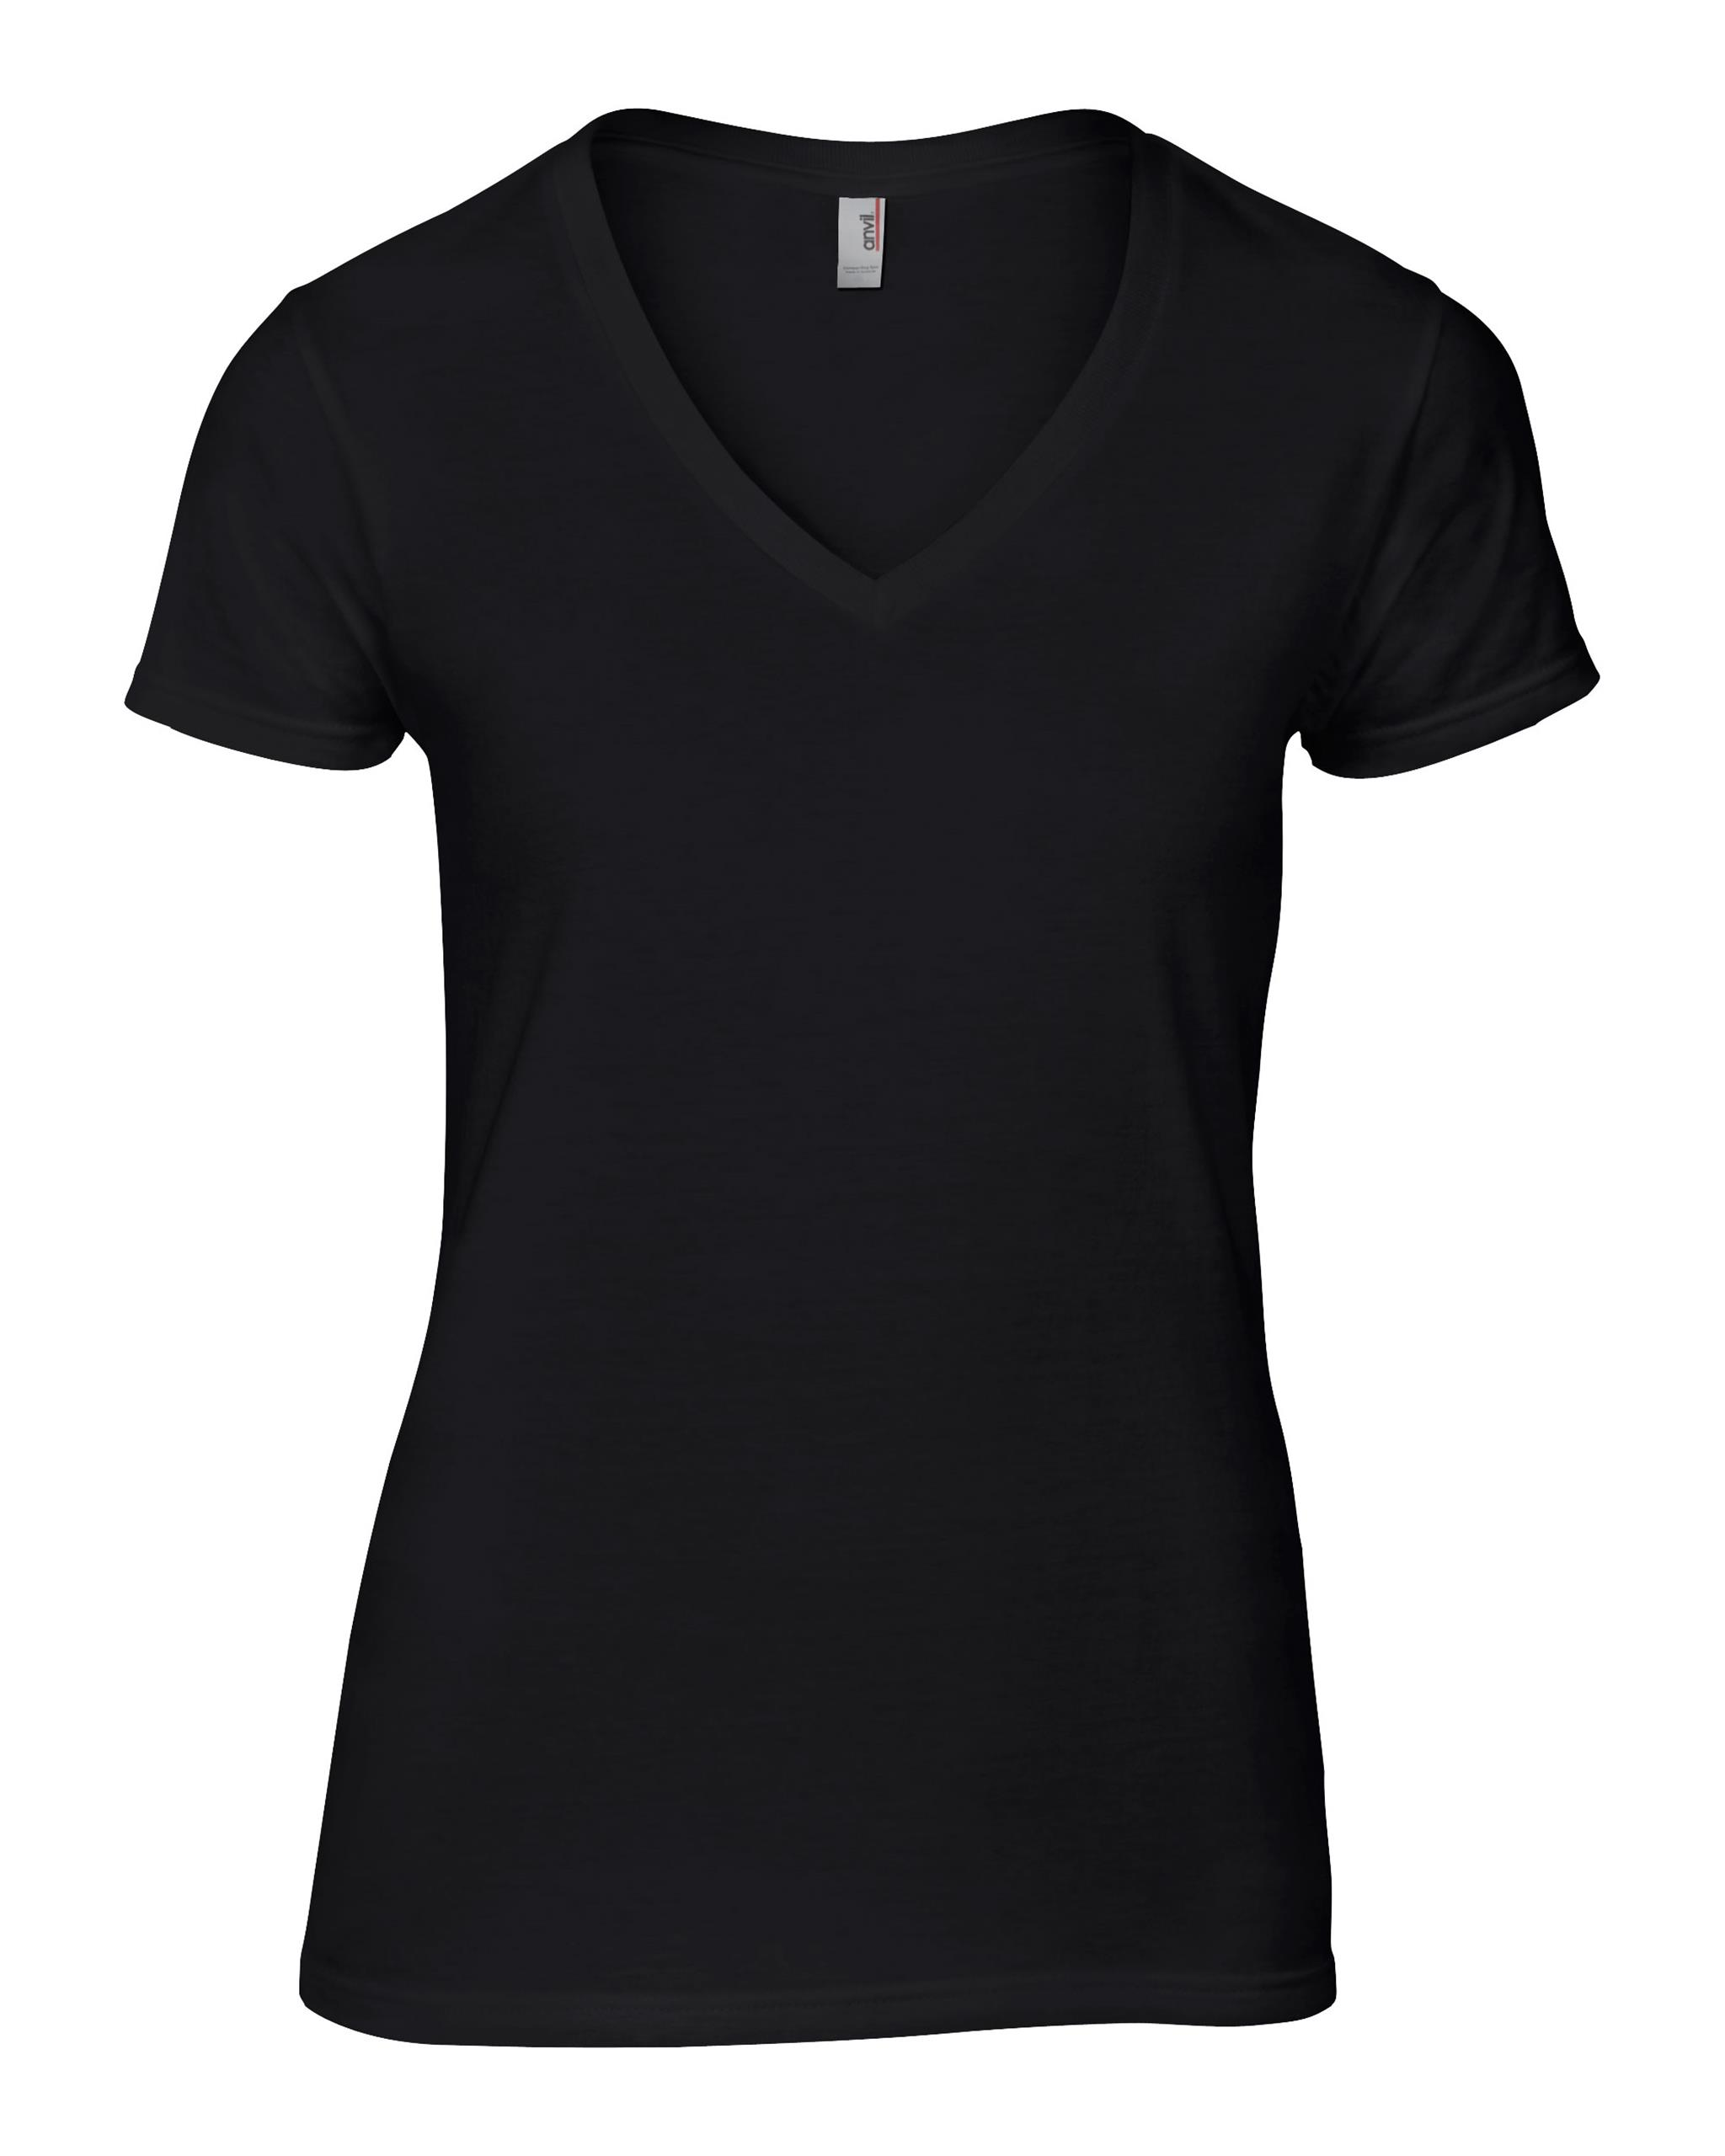 New anvil womens v neck tee ladies short sleeved basic t V neck black t shirt